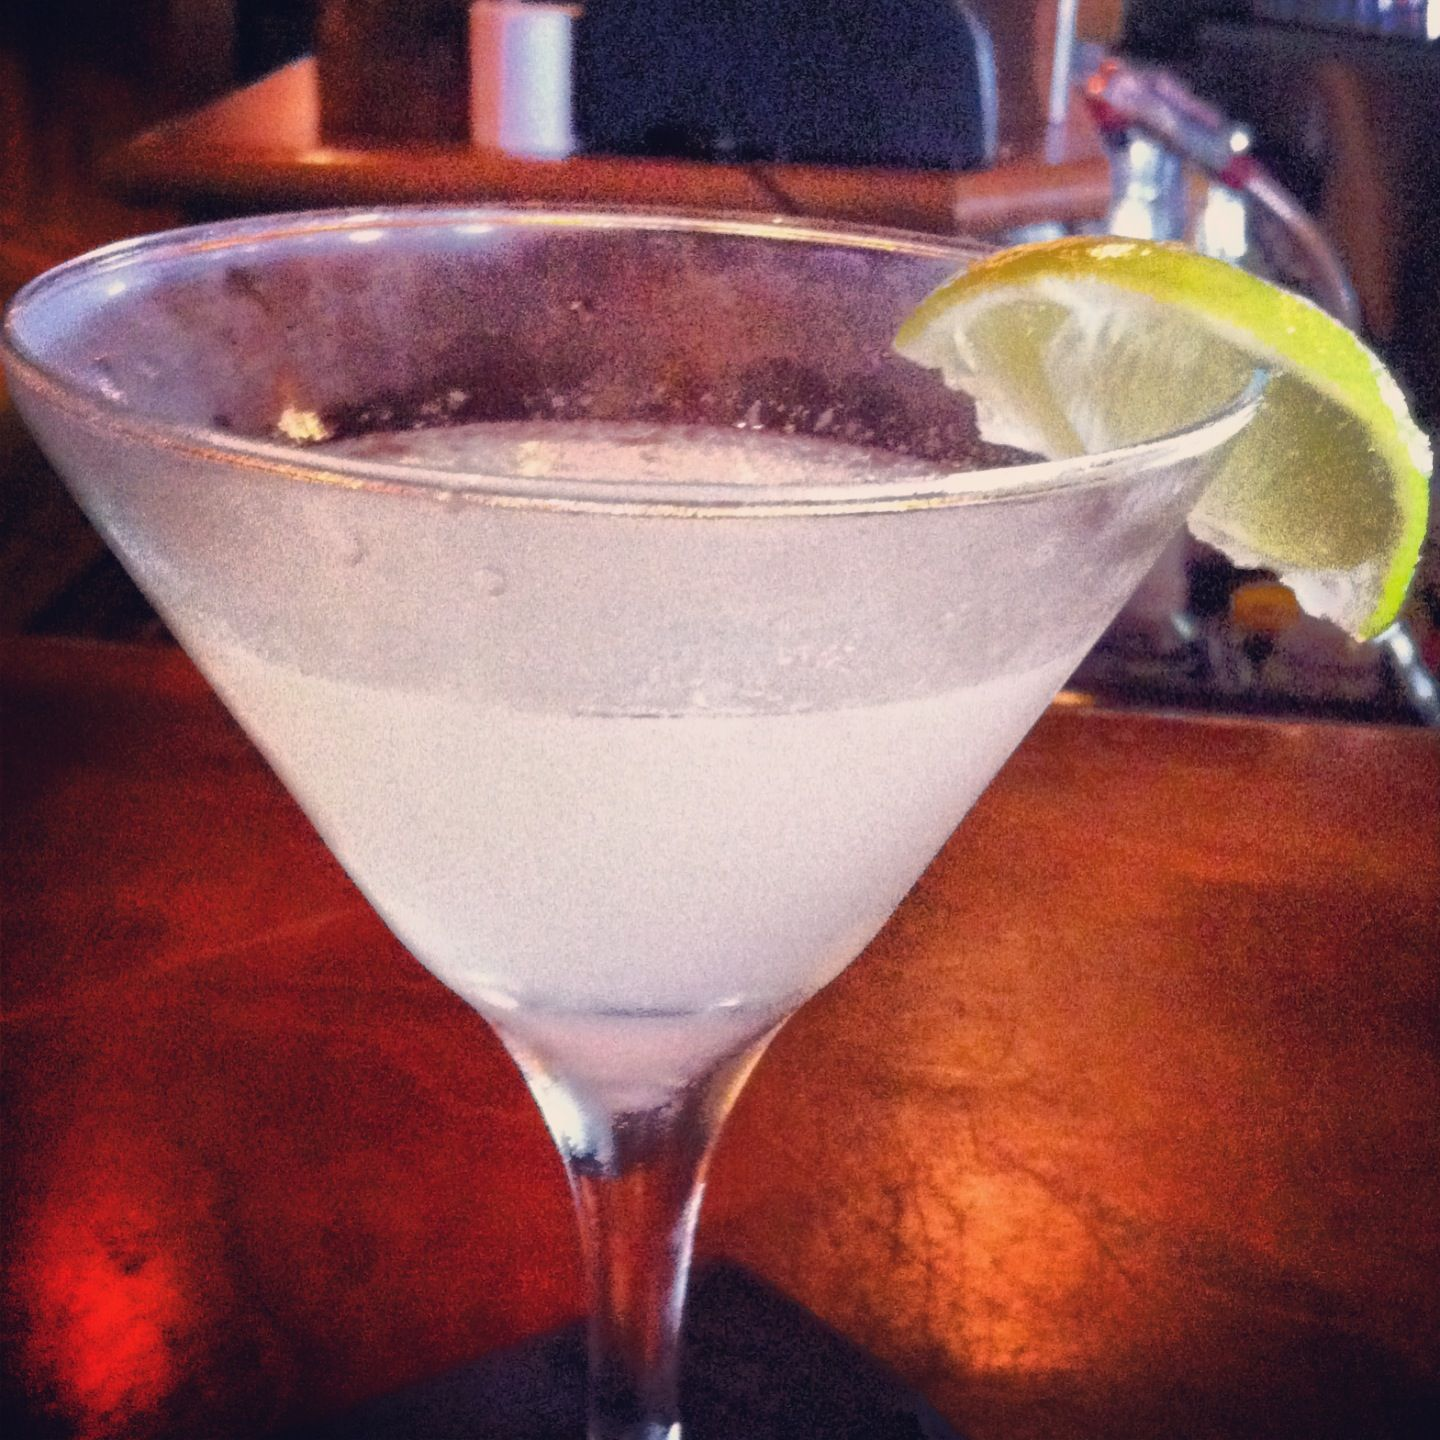 The Gimlet... a classic cocktail & very refreshing. Click link for recipe!